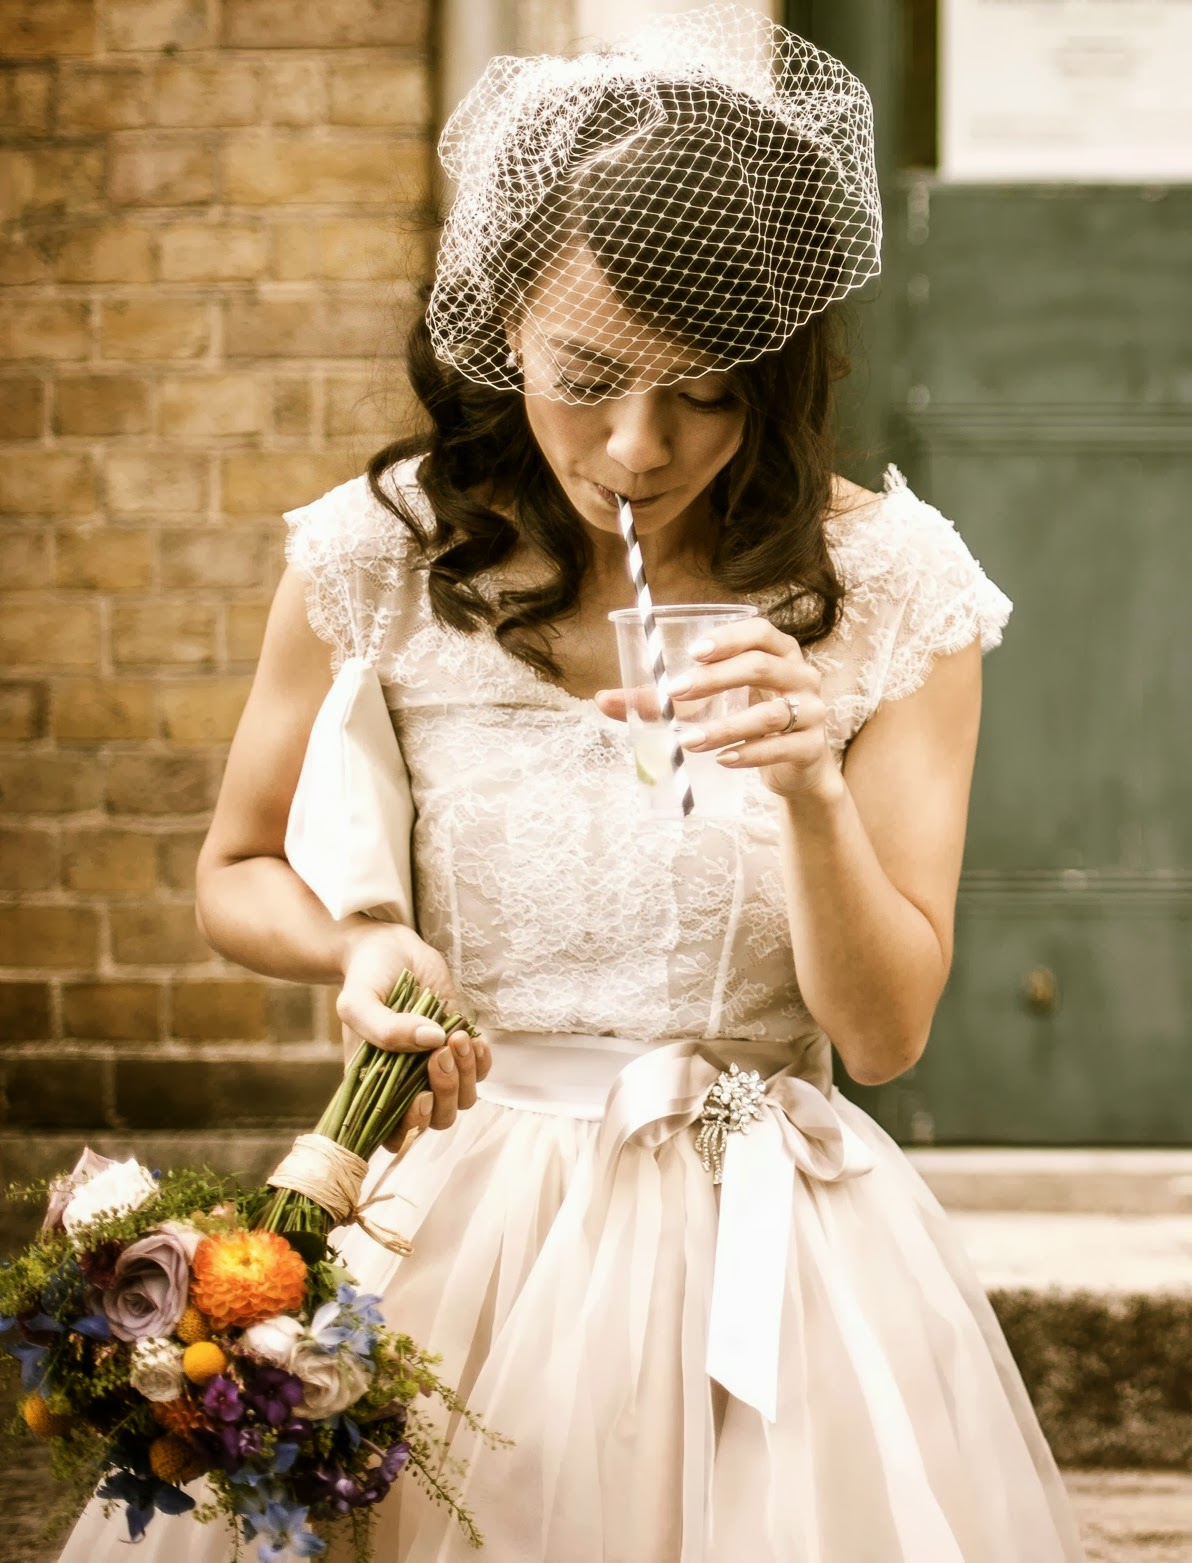 Today S Gorgeous Vintage Bride Sophie In A 1950s Style Wedding Dress From My Heavenly Collection